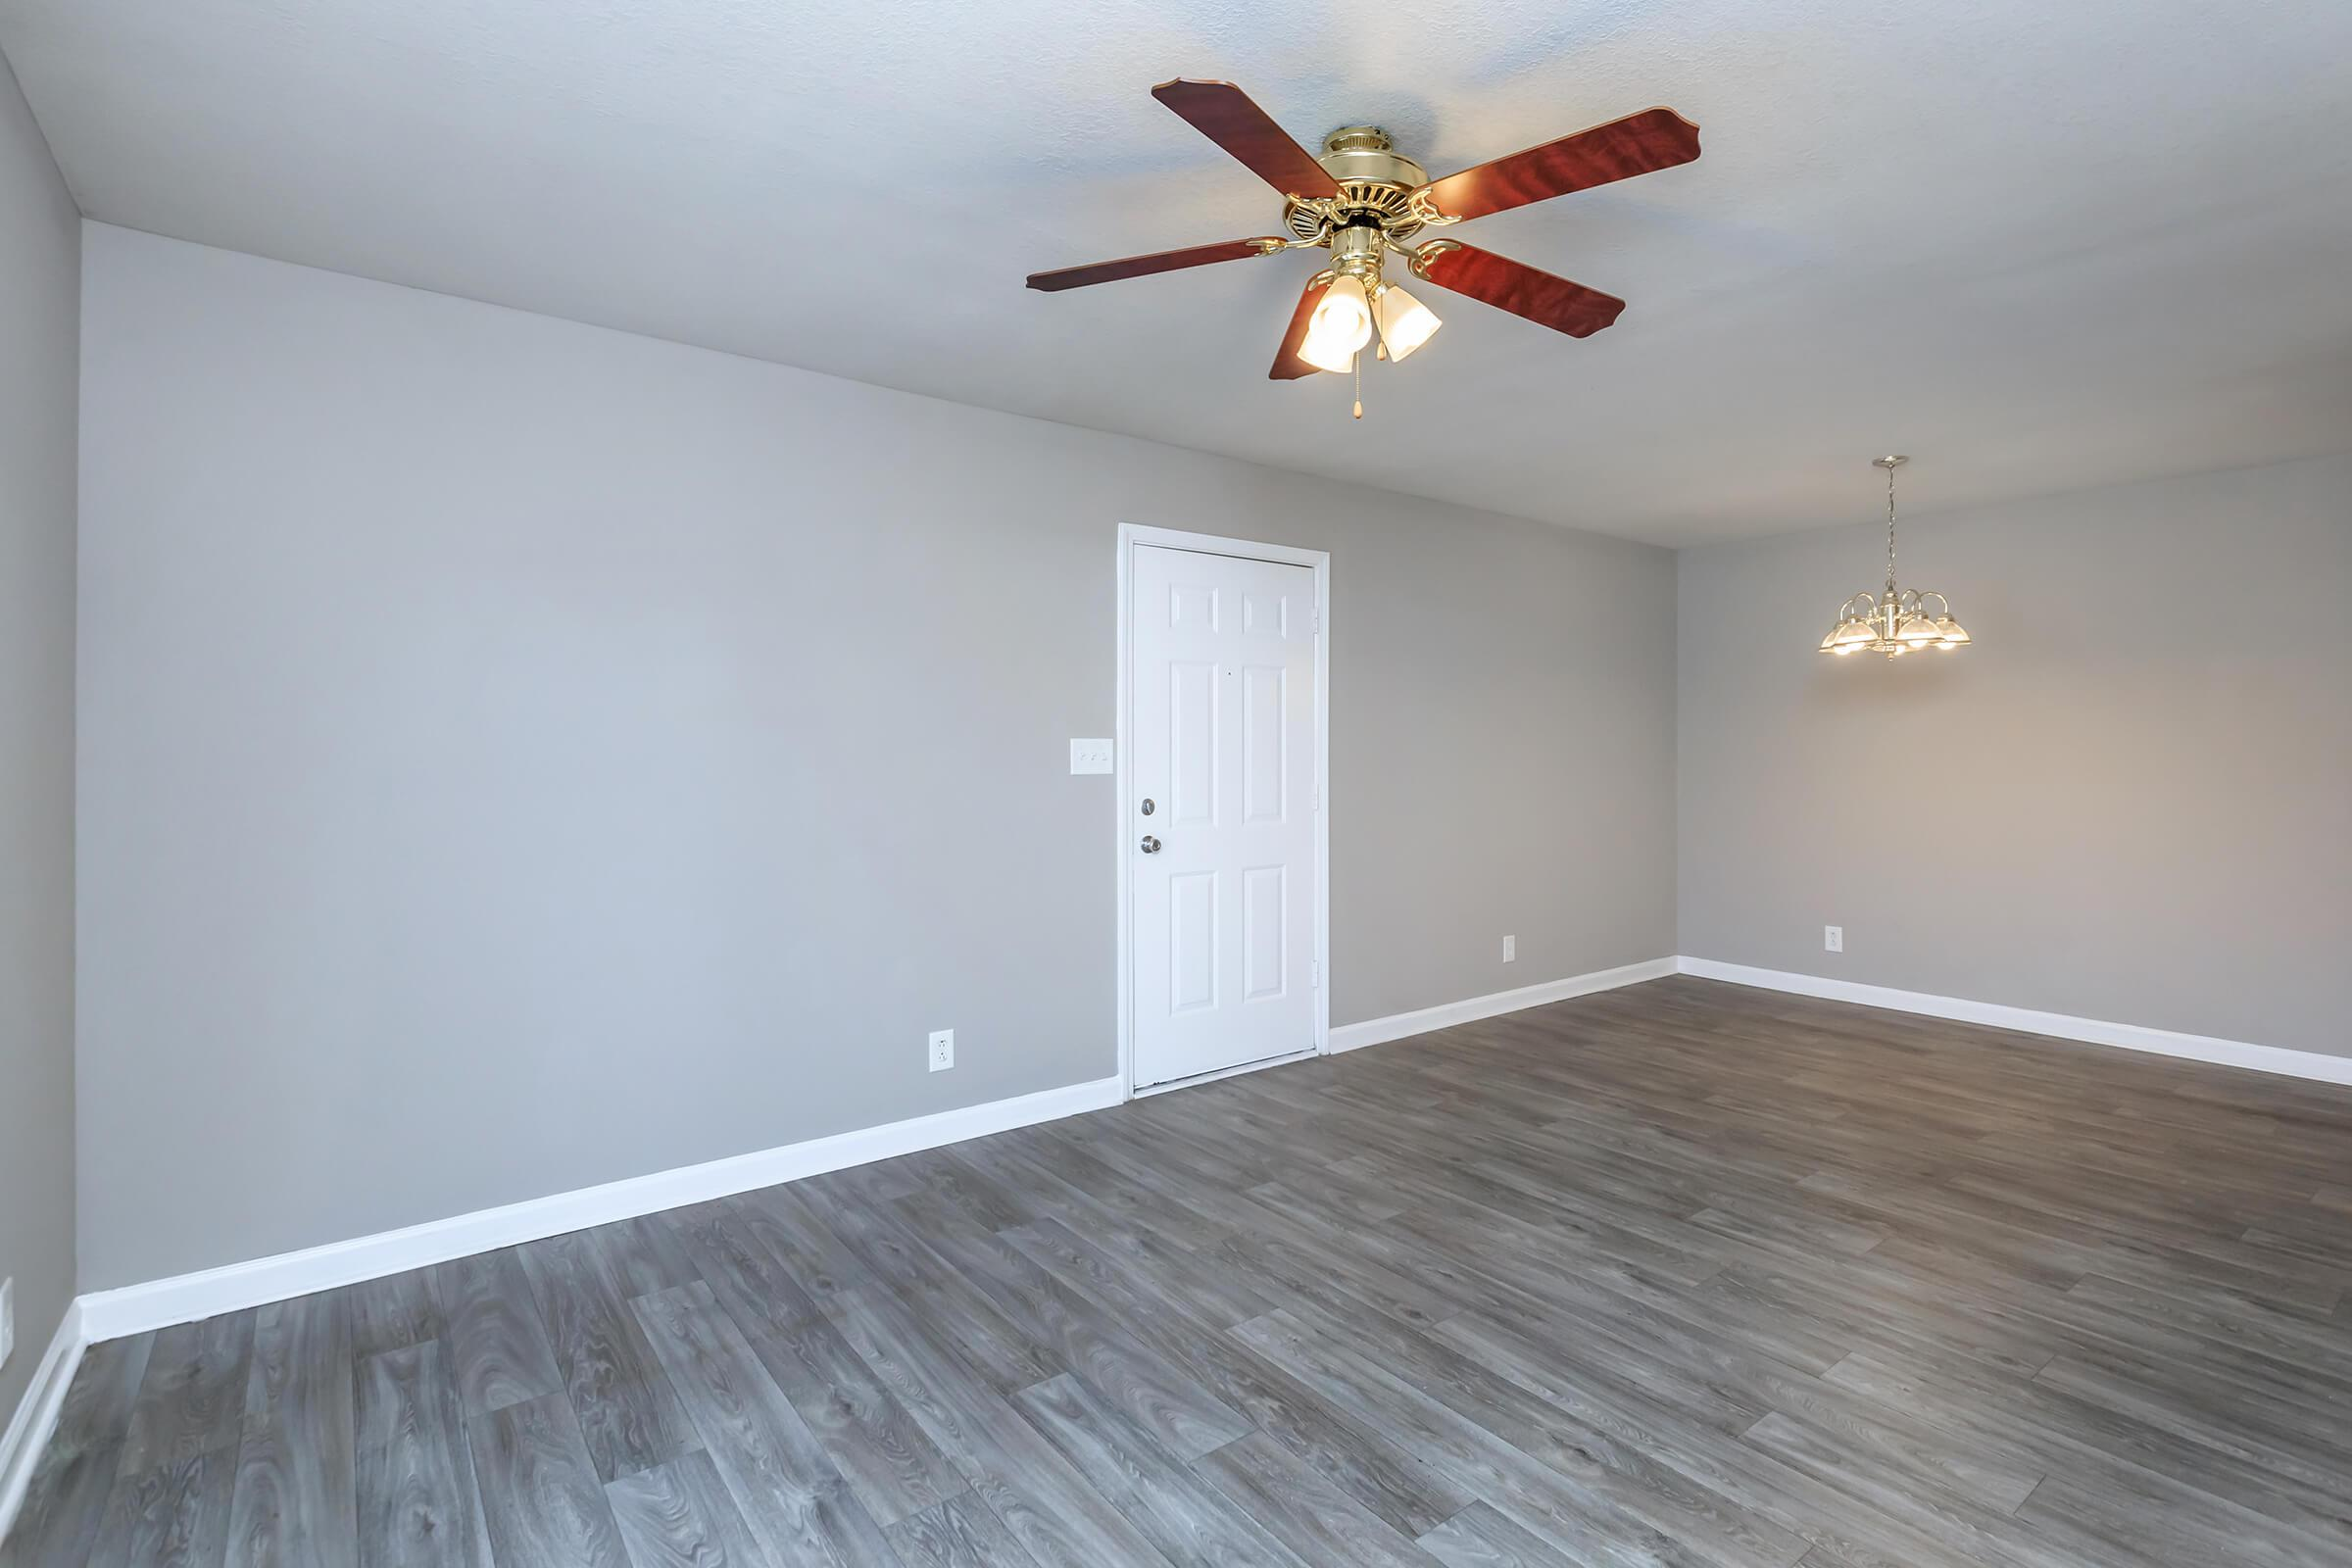 Ceiling fans in two bedroom apartment